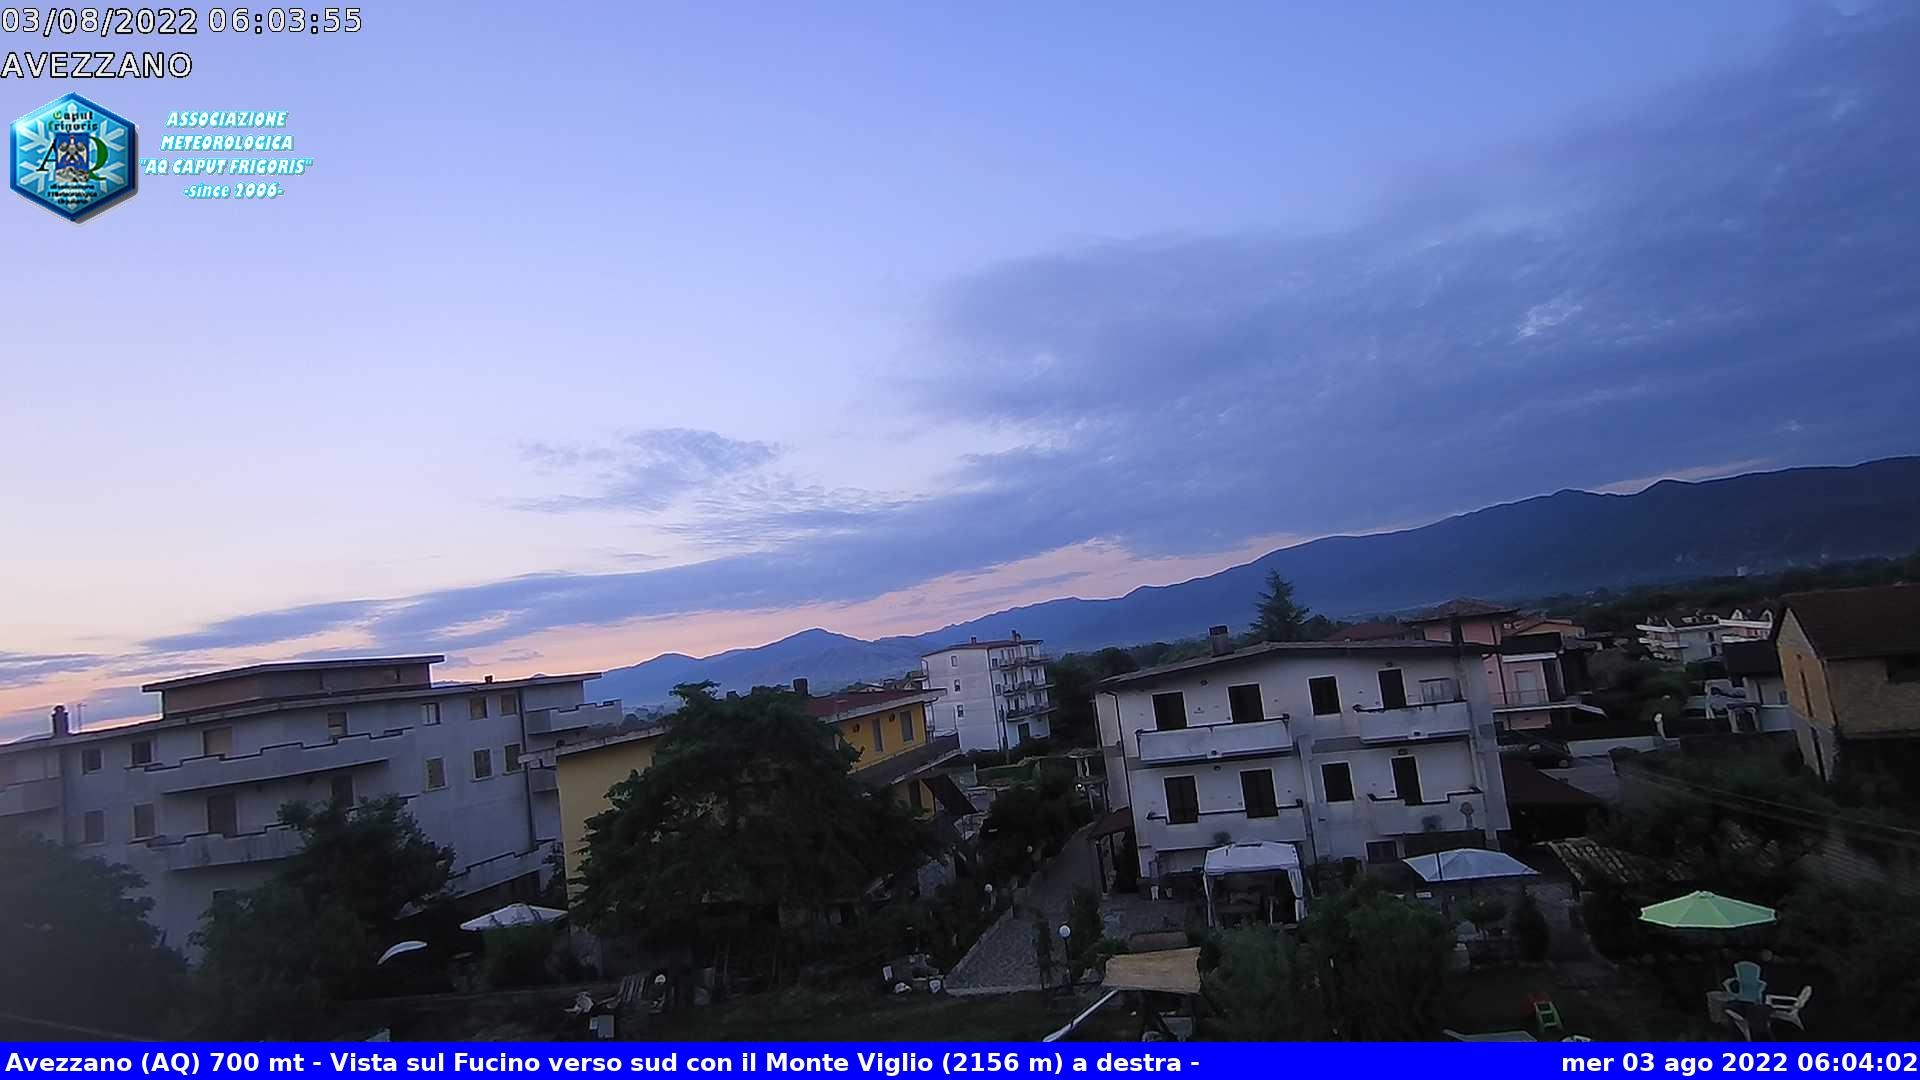 Webcam Avezzano(AQ)